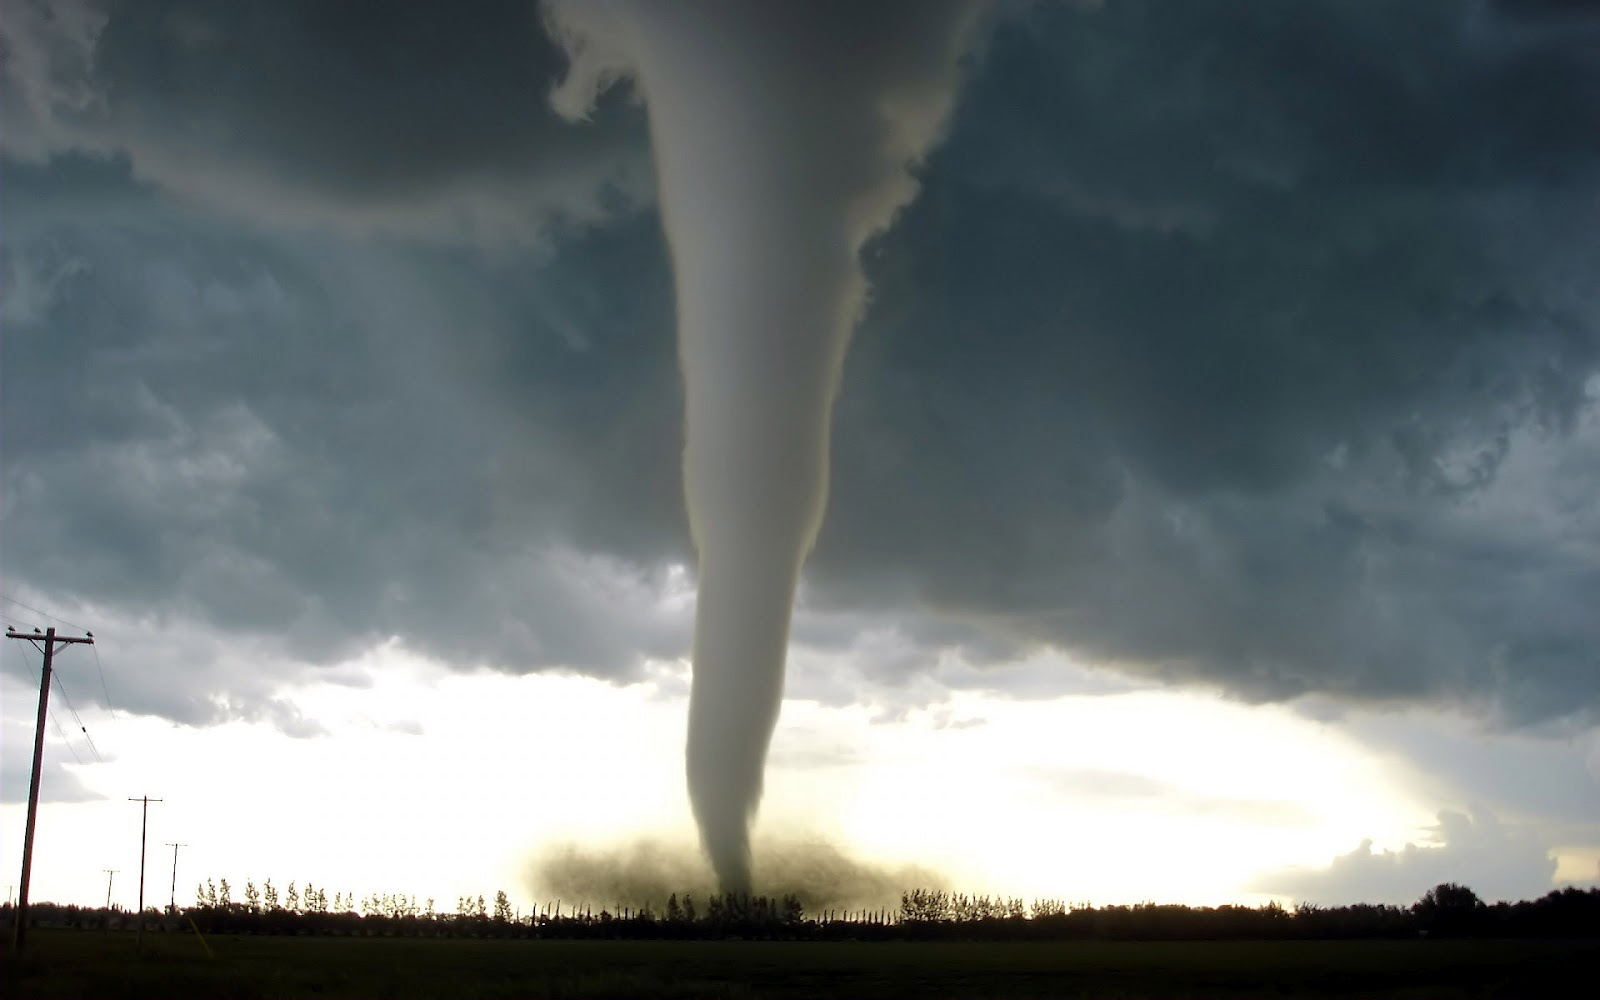 Tornado achtergronden hd wallpapers - Tornado images hd ...